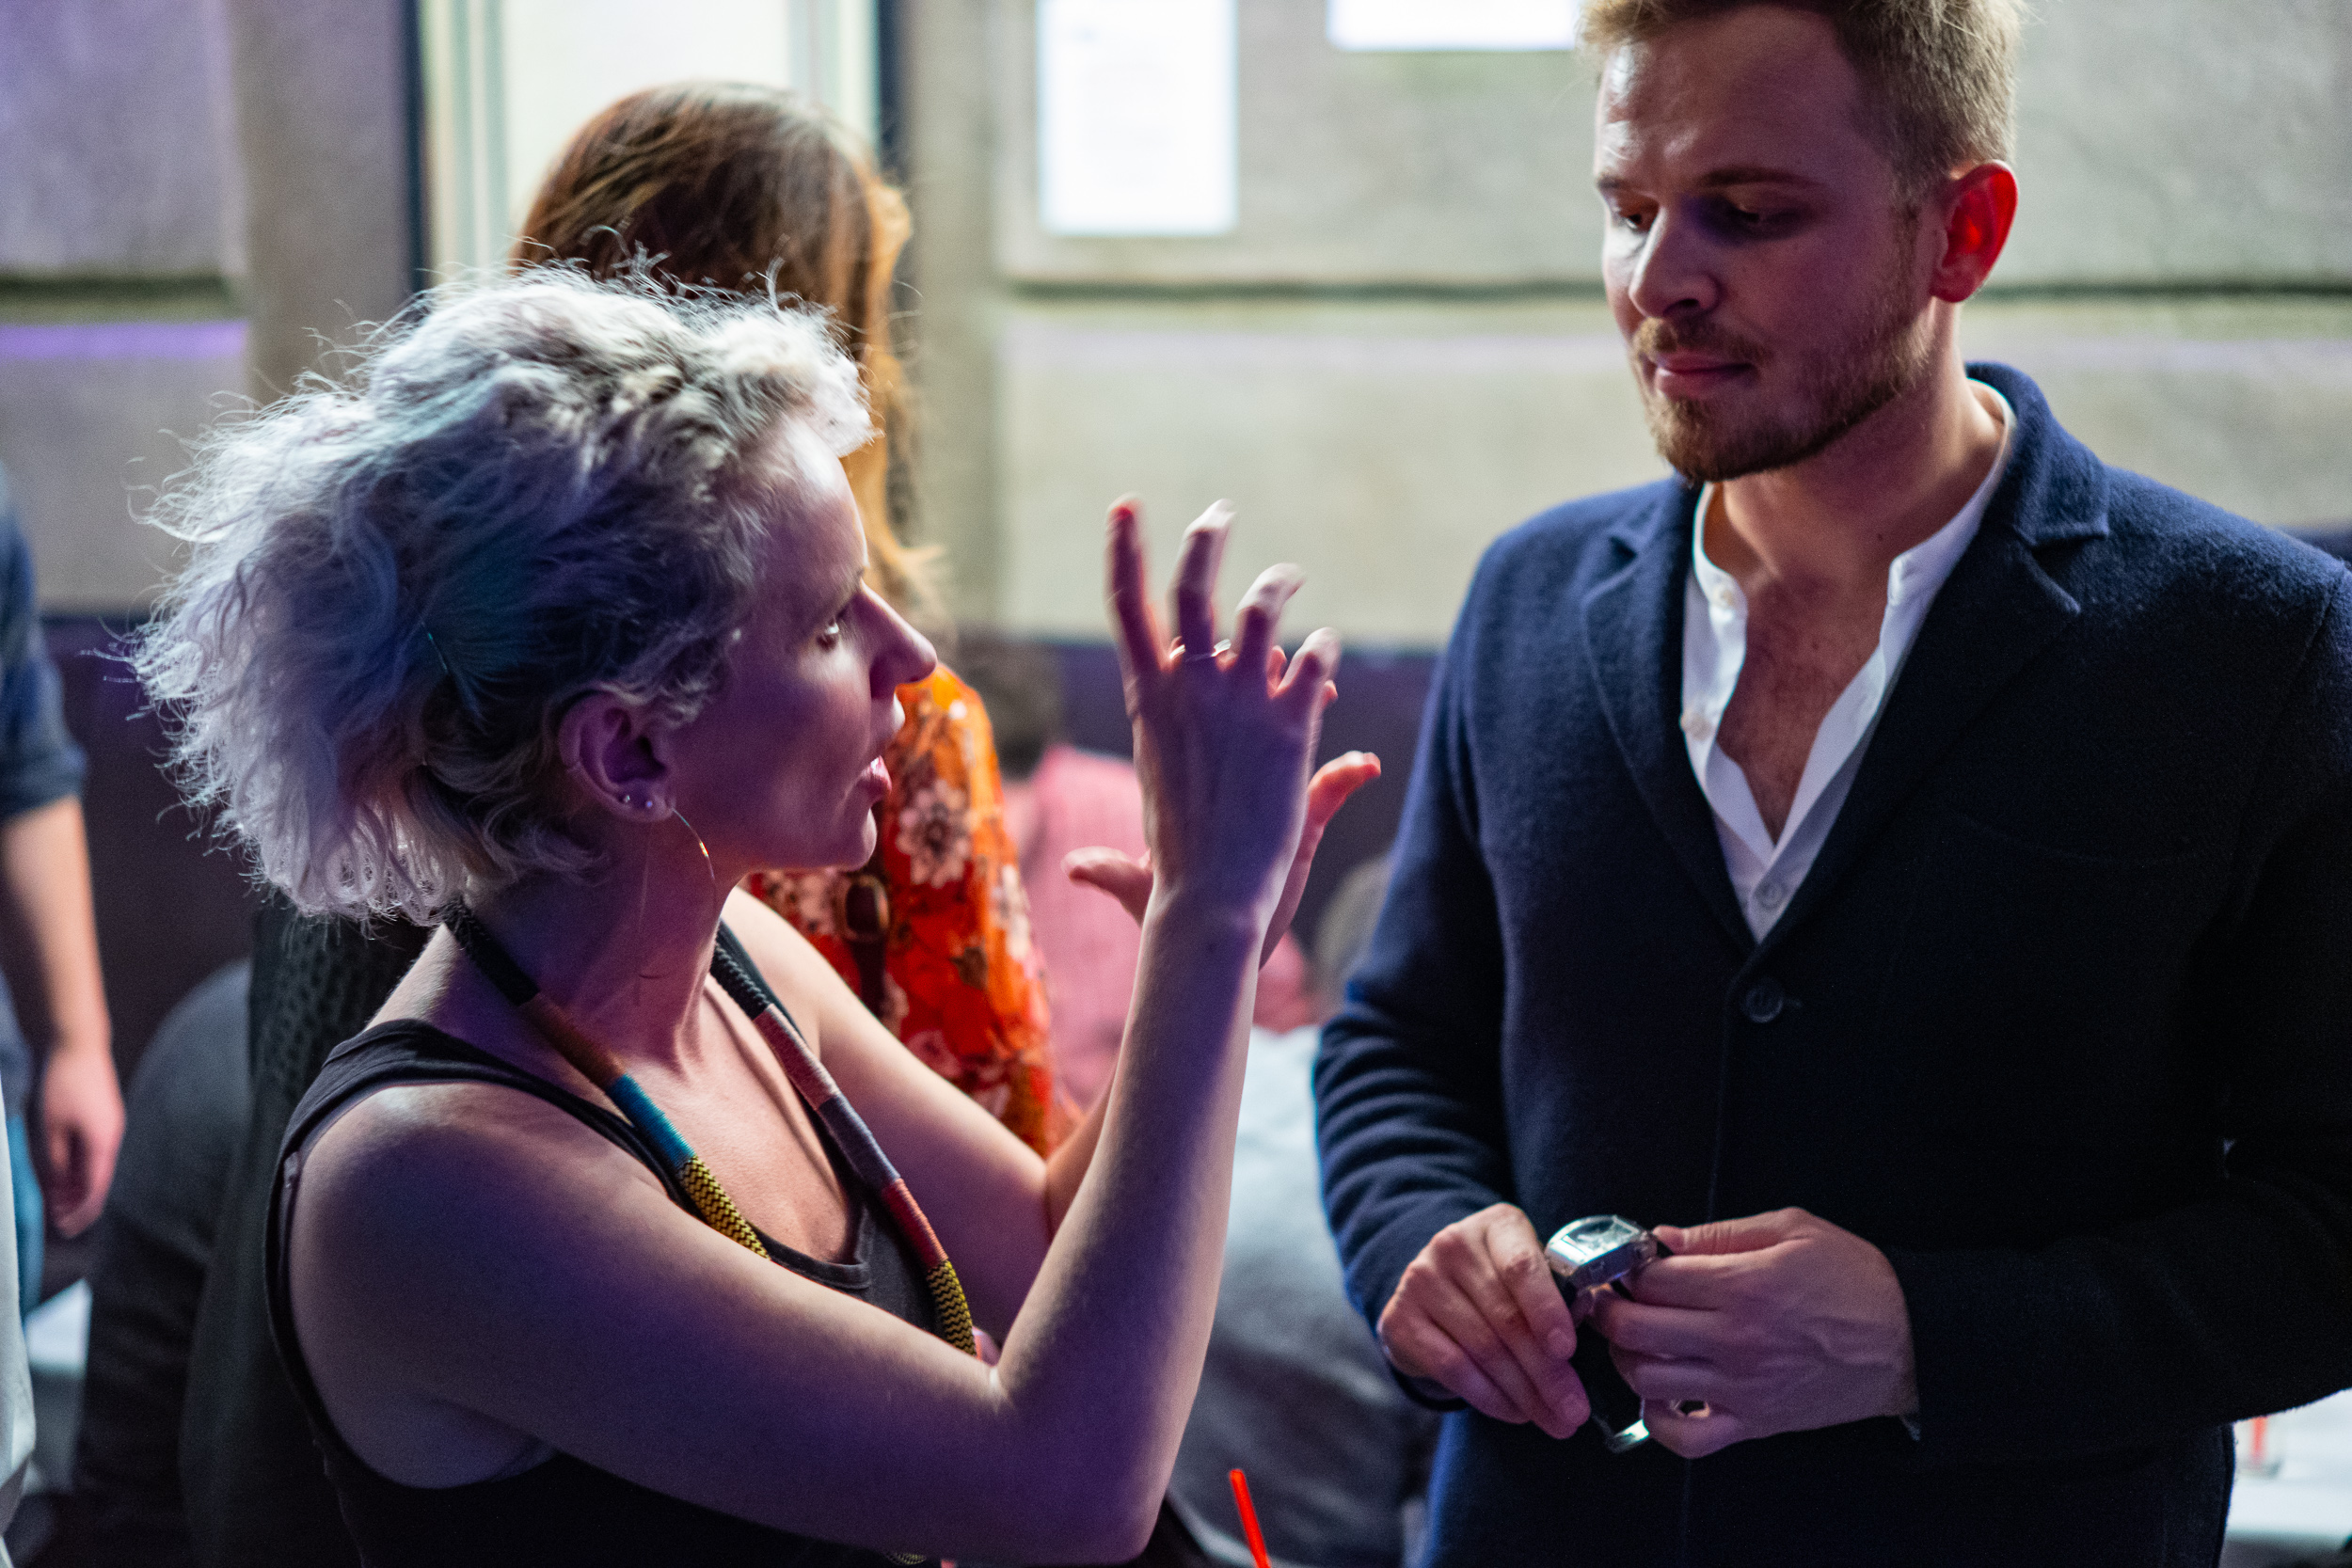 Fiona chatting with Rexhep Rexhepi of Akrivia at RedBar's Independents Night in October 2018